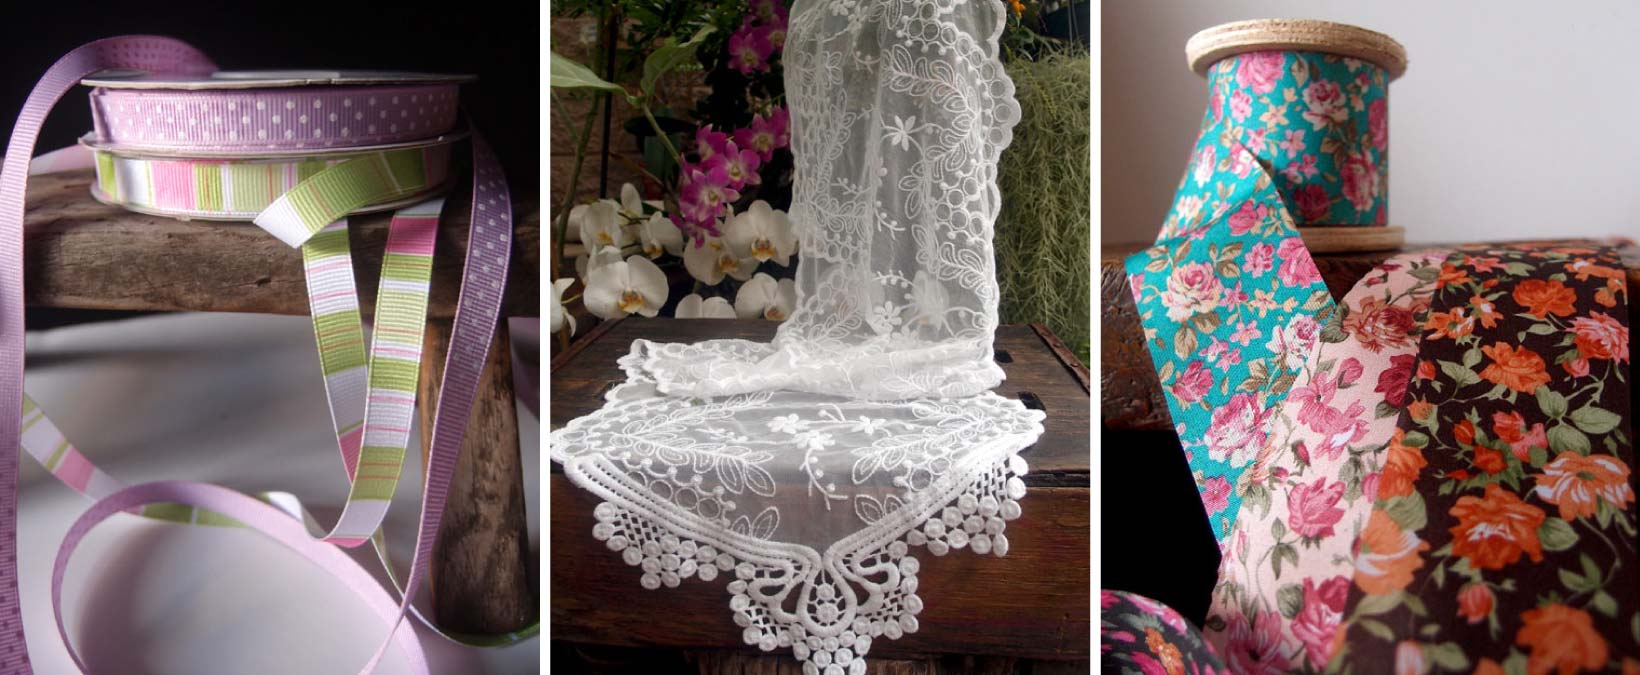 Spring ribbons and easter decor with lace table runners